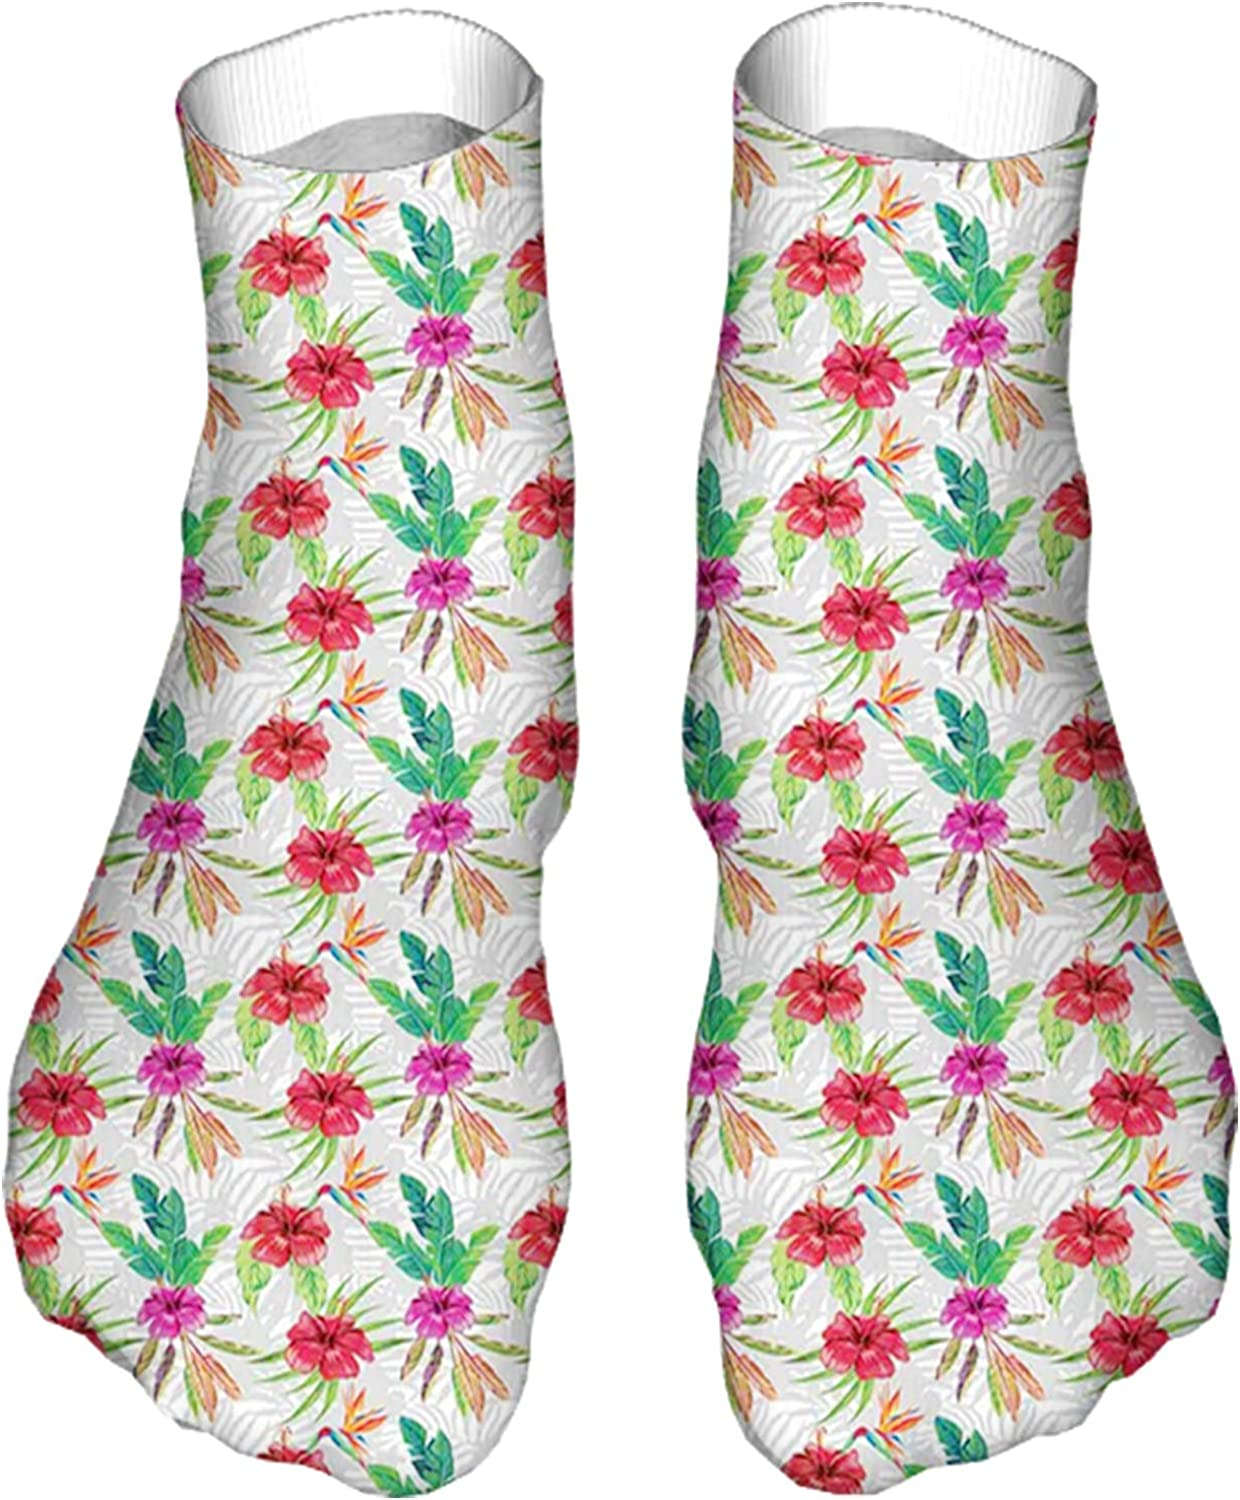 Men's and Women's Fun Socks Printed Cool Novelty Funny Socks,Hibiscus and Bird of Paradise with Banana Leaves on Gray